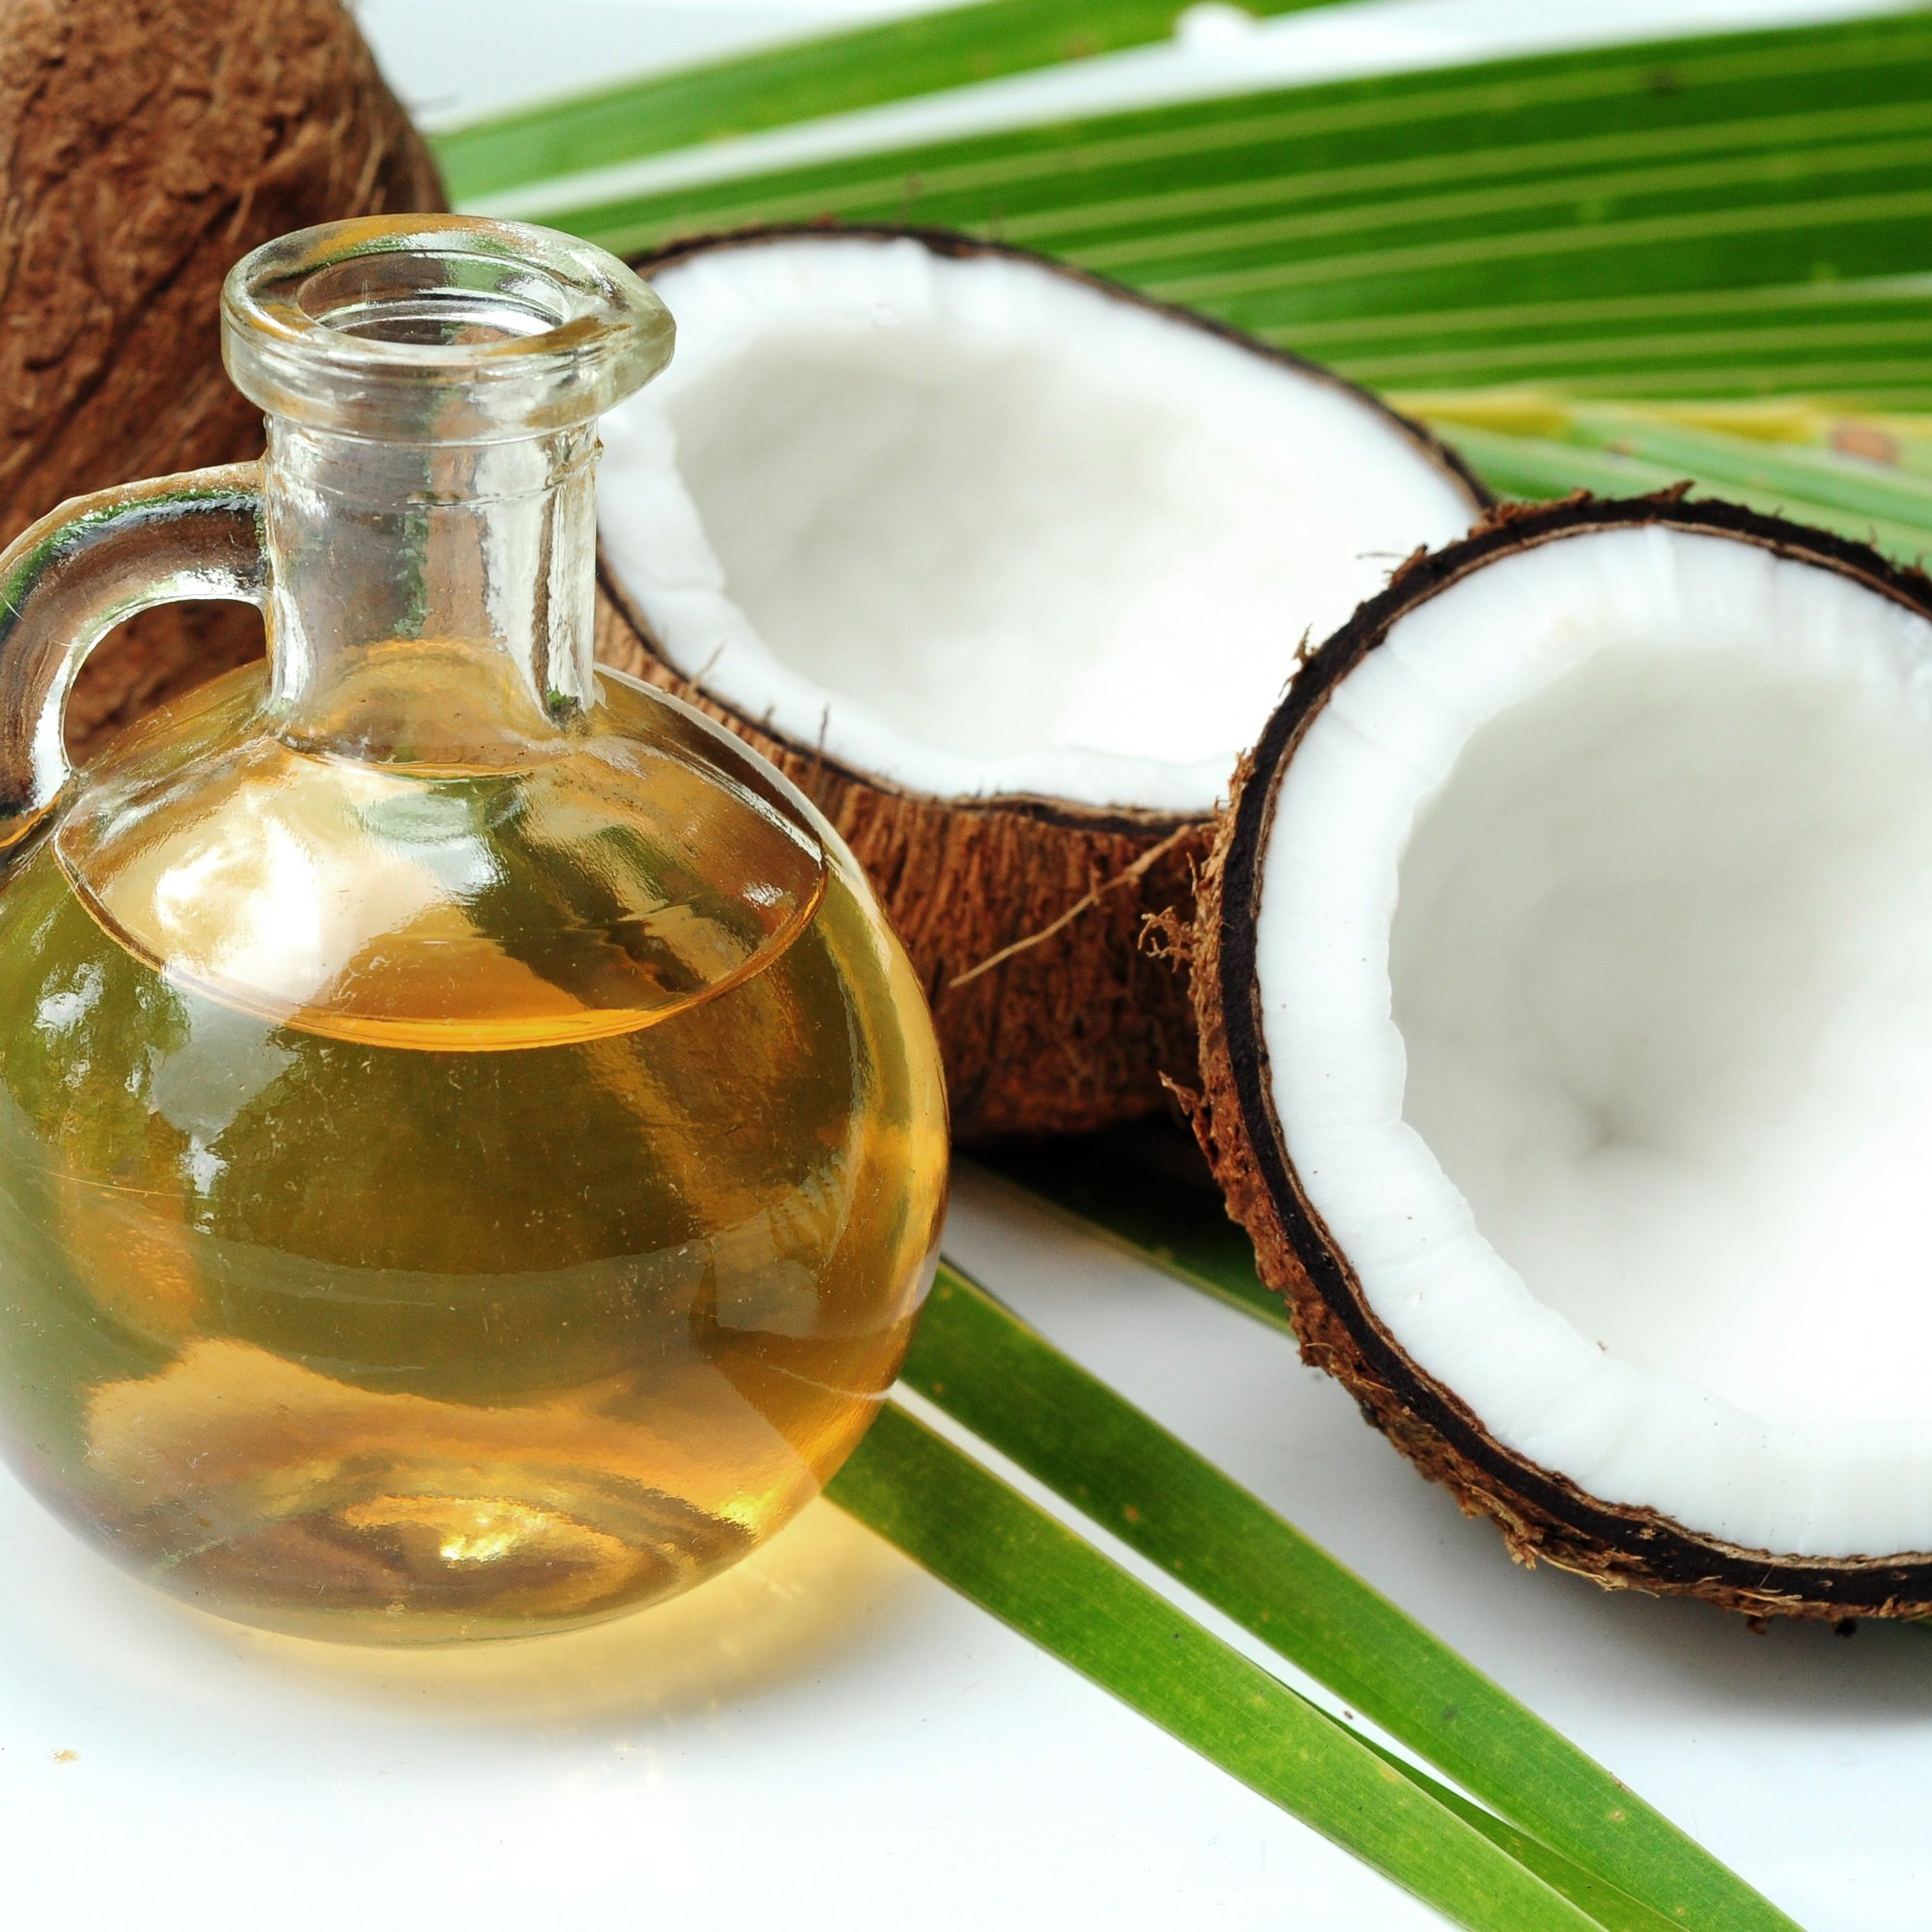 Coconut Oil - Peter Thomas Roth Skin Care Ingredient Glossary